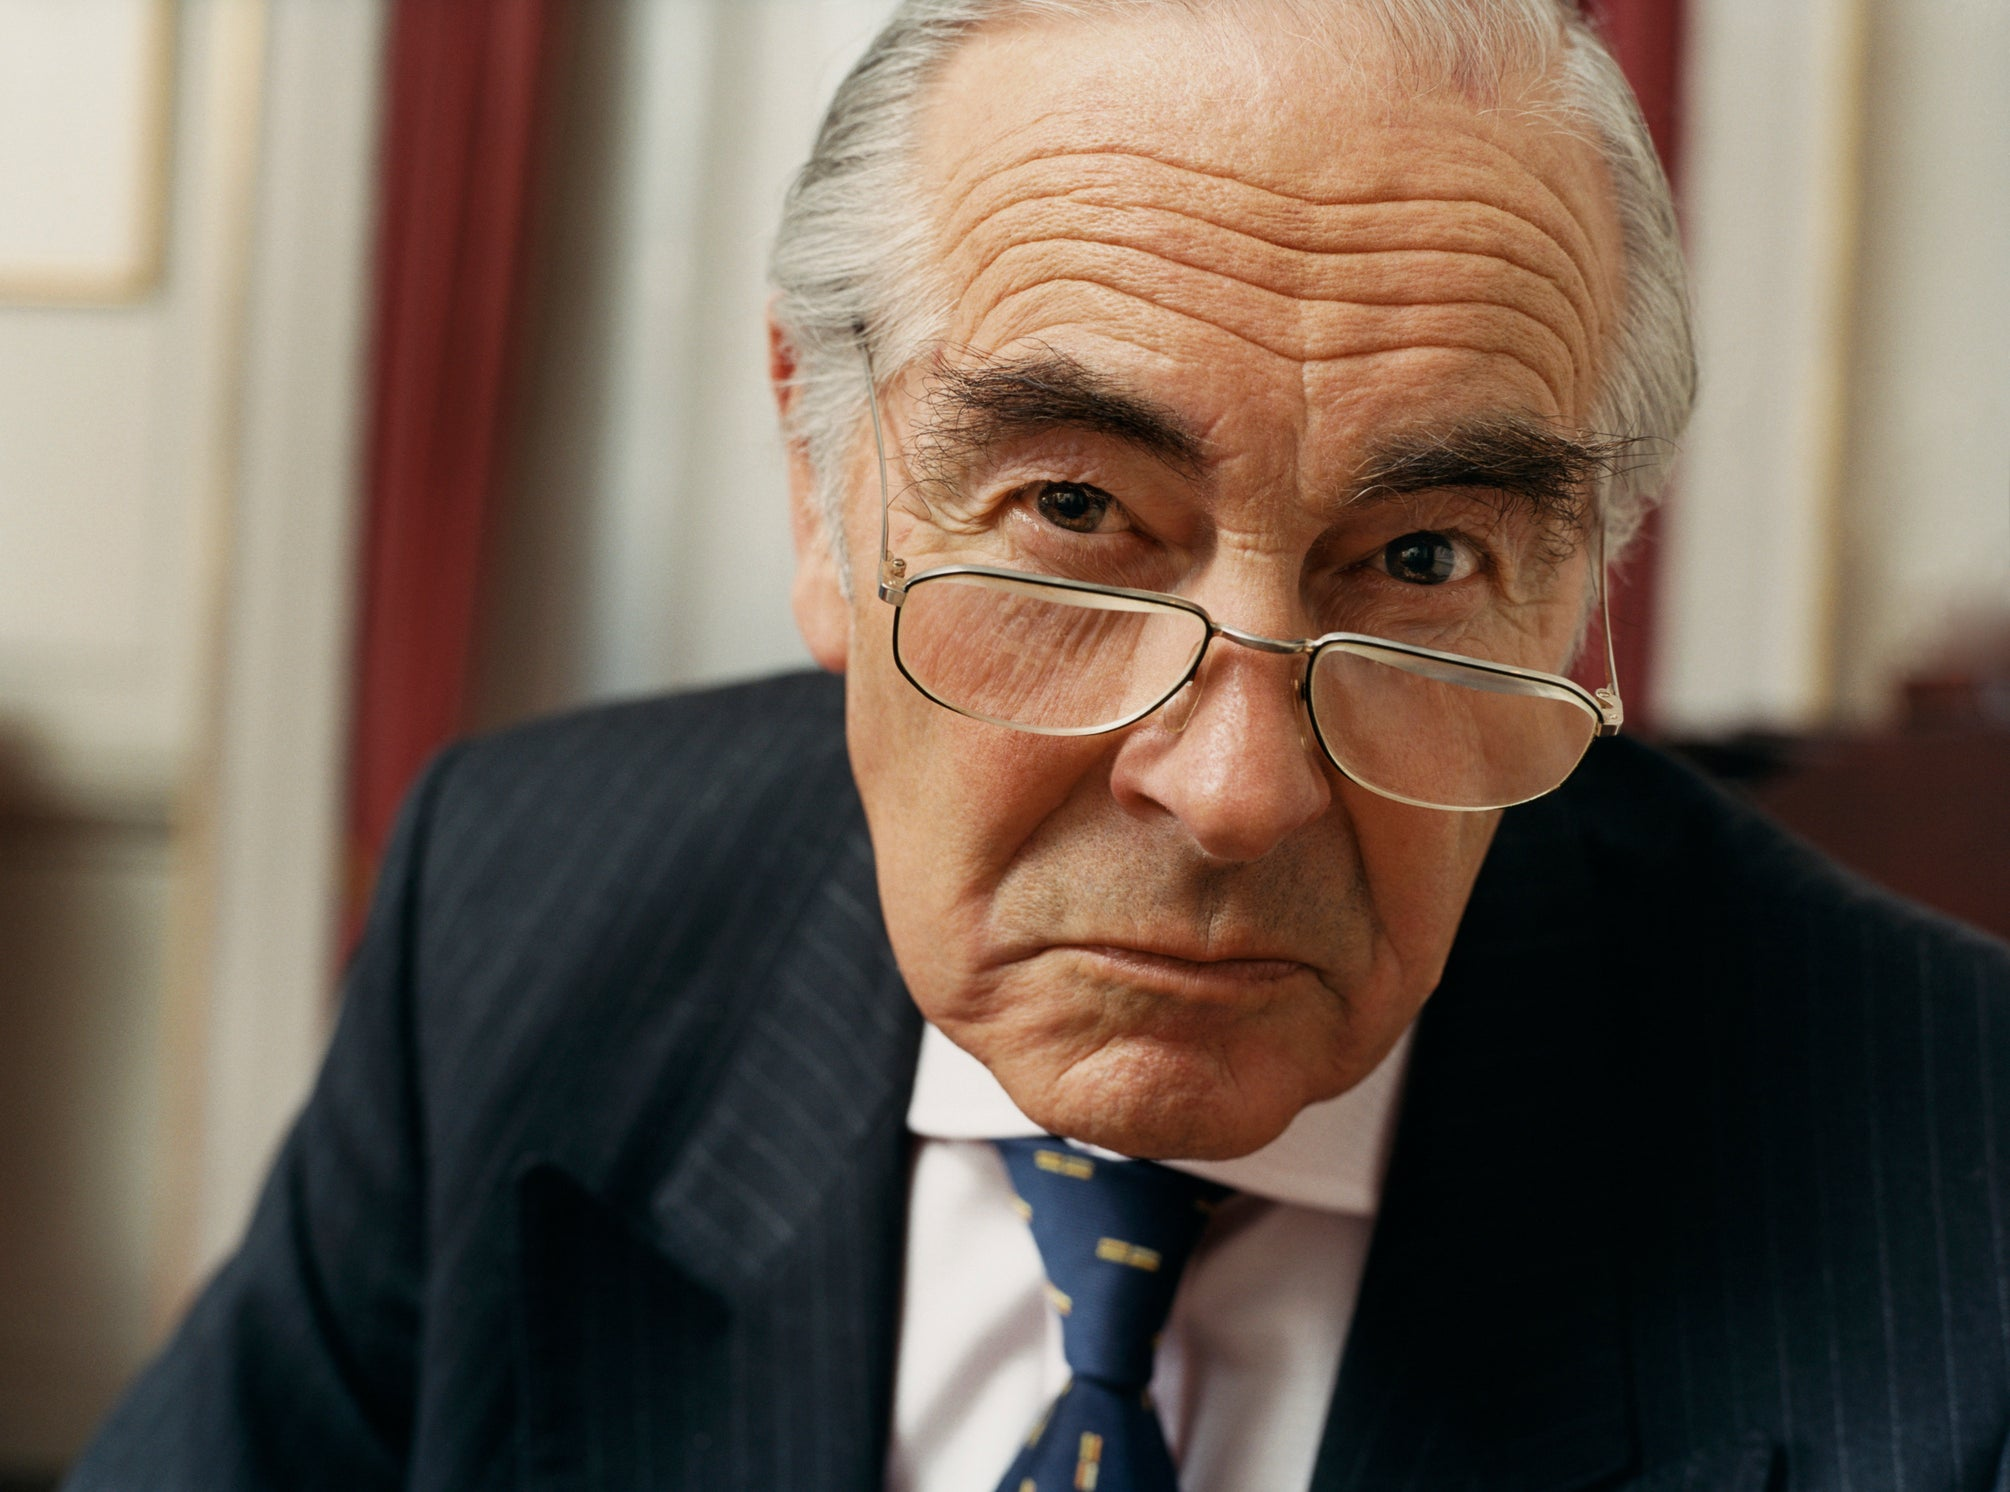 A visibly annoyed elderly man in a suit with a scowl on his face.